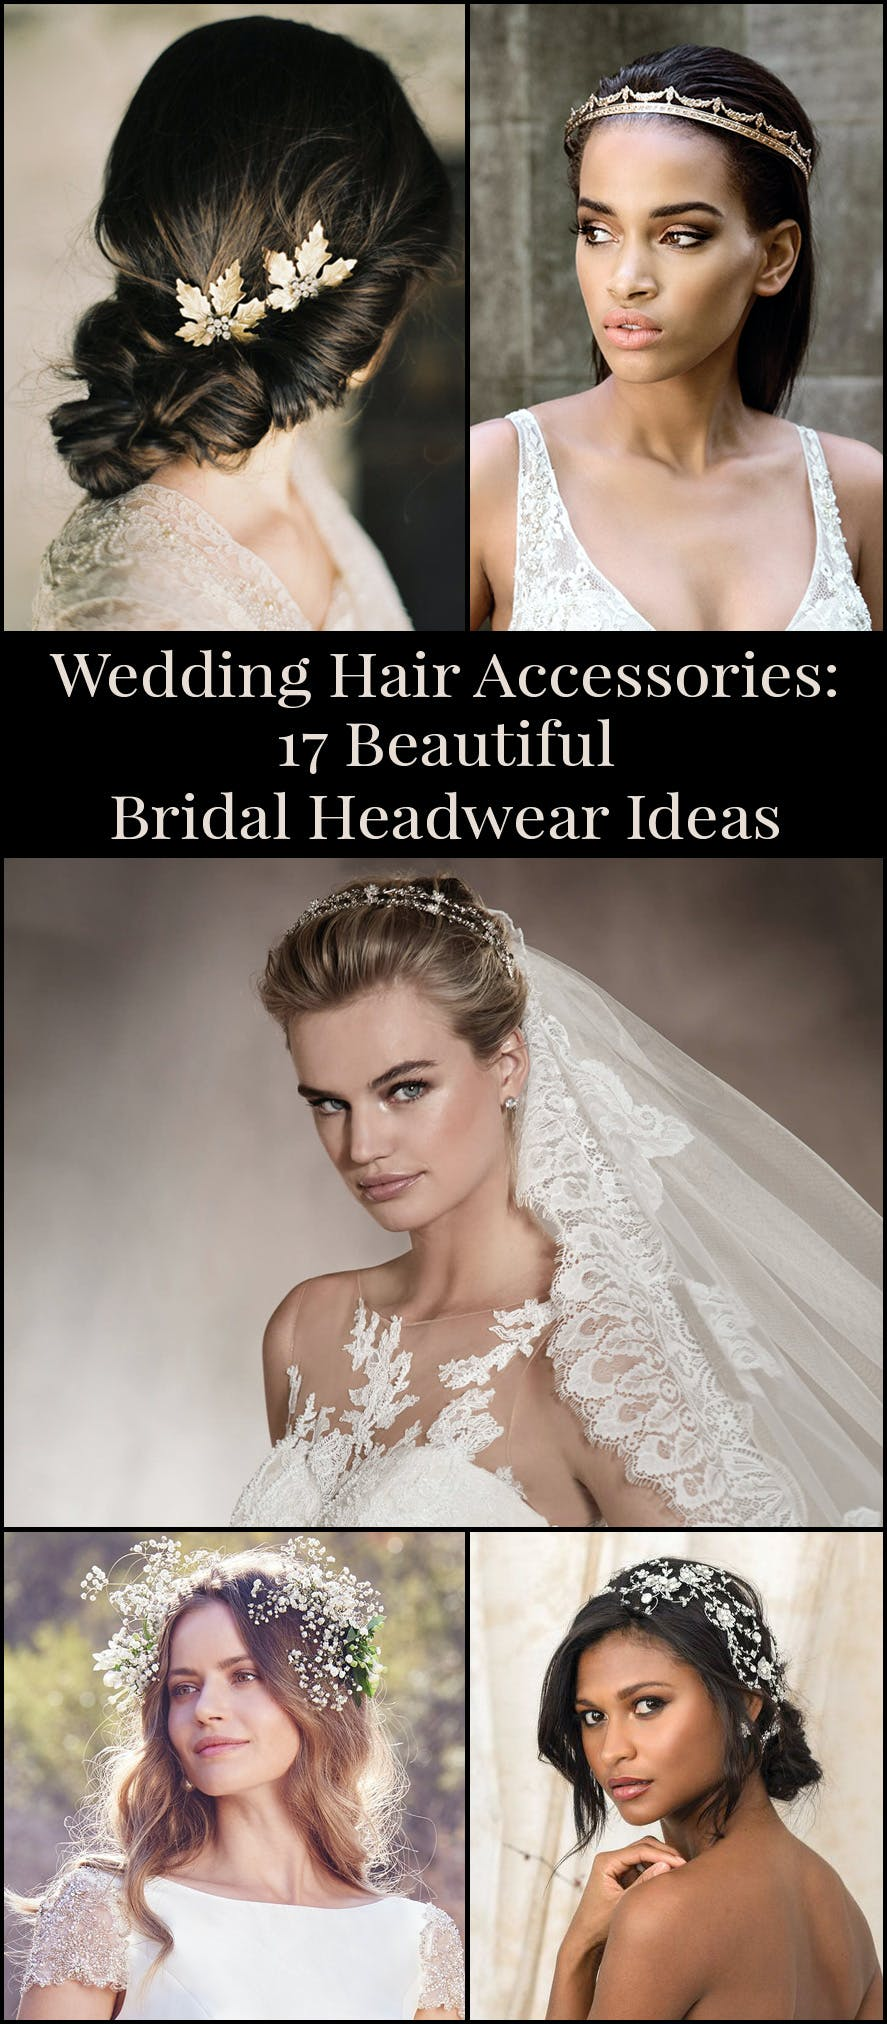 Wedding Hair Accessories - 17 Beautiful Bridal Headwear Ideas and Inspiration | Confetii.co.uk